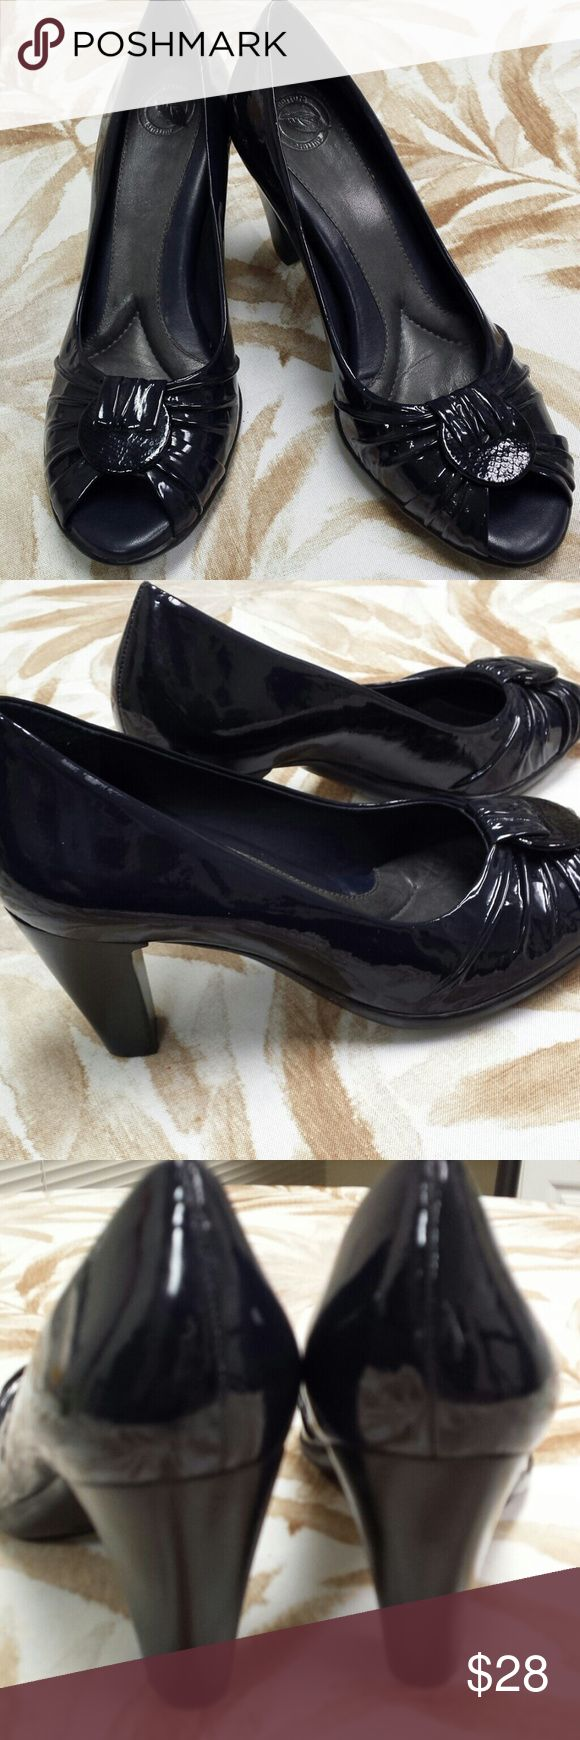 Nurture Navy Patent Peep Toe Heels Nurture Navy Patent Peep Toe Heels. Great condition and wicked comfy. A must have if you need classier shies for work. Nurture Shoes Heels